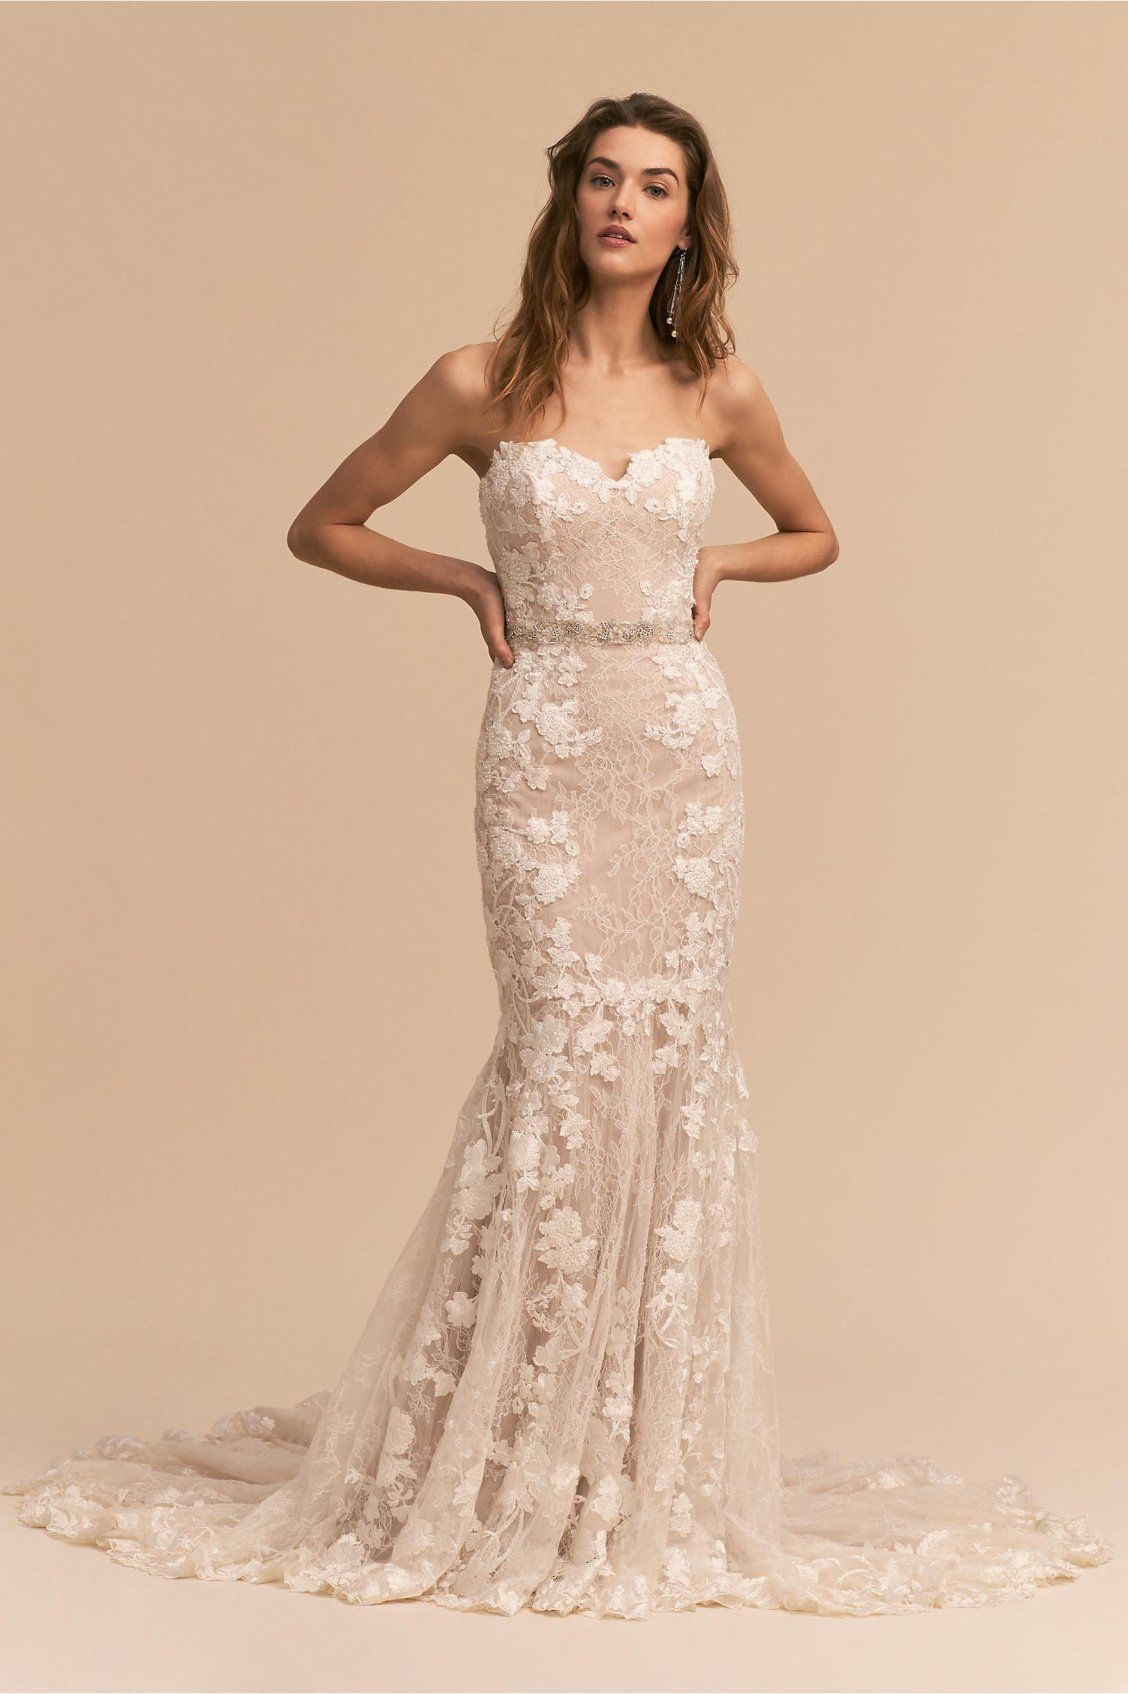 Lombardy Gown from BHLDN f4e6e1d38692